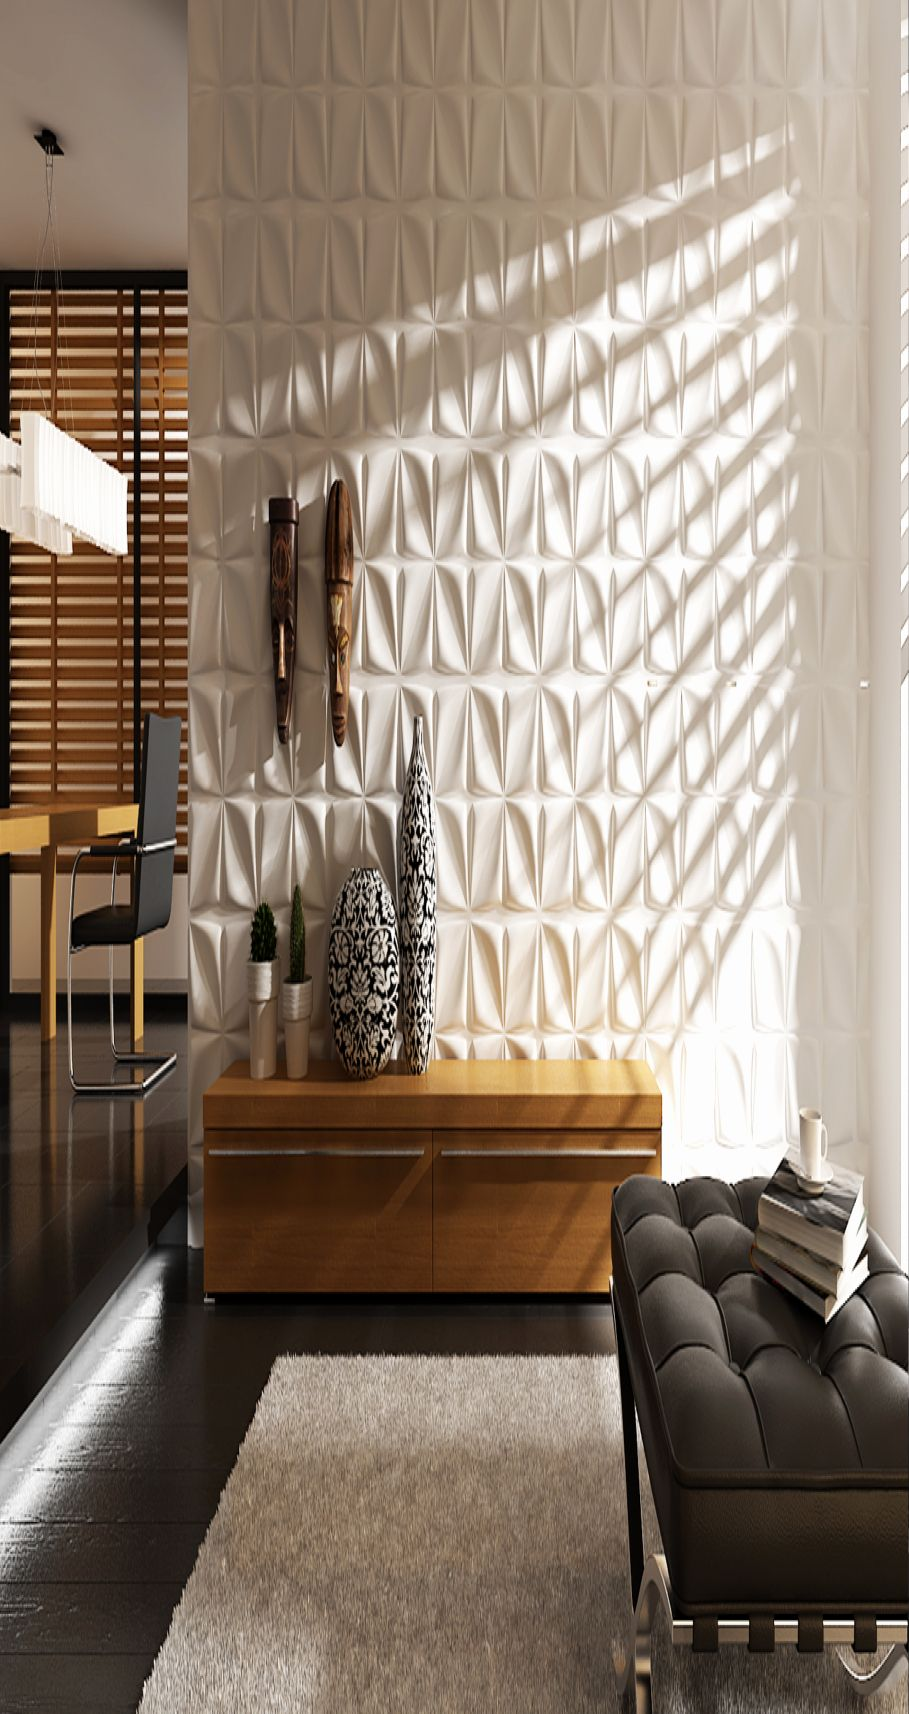 Moderne Deckenpaneele 28 Ehrfurcht Wandpaneele Wohnzimmer | Modern Wallpaper Living Room, Room Wallpaper Designs, Interior Wall Decor